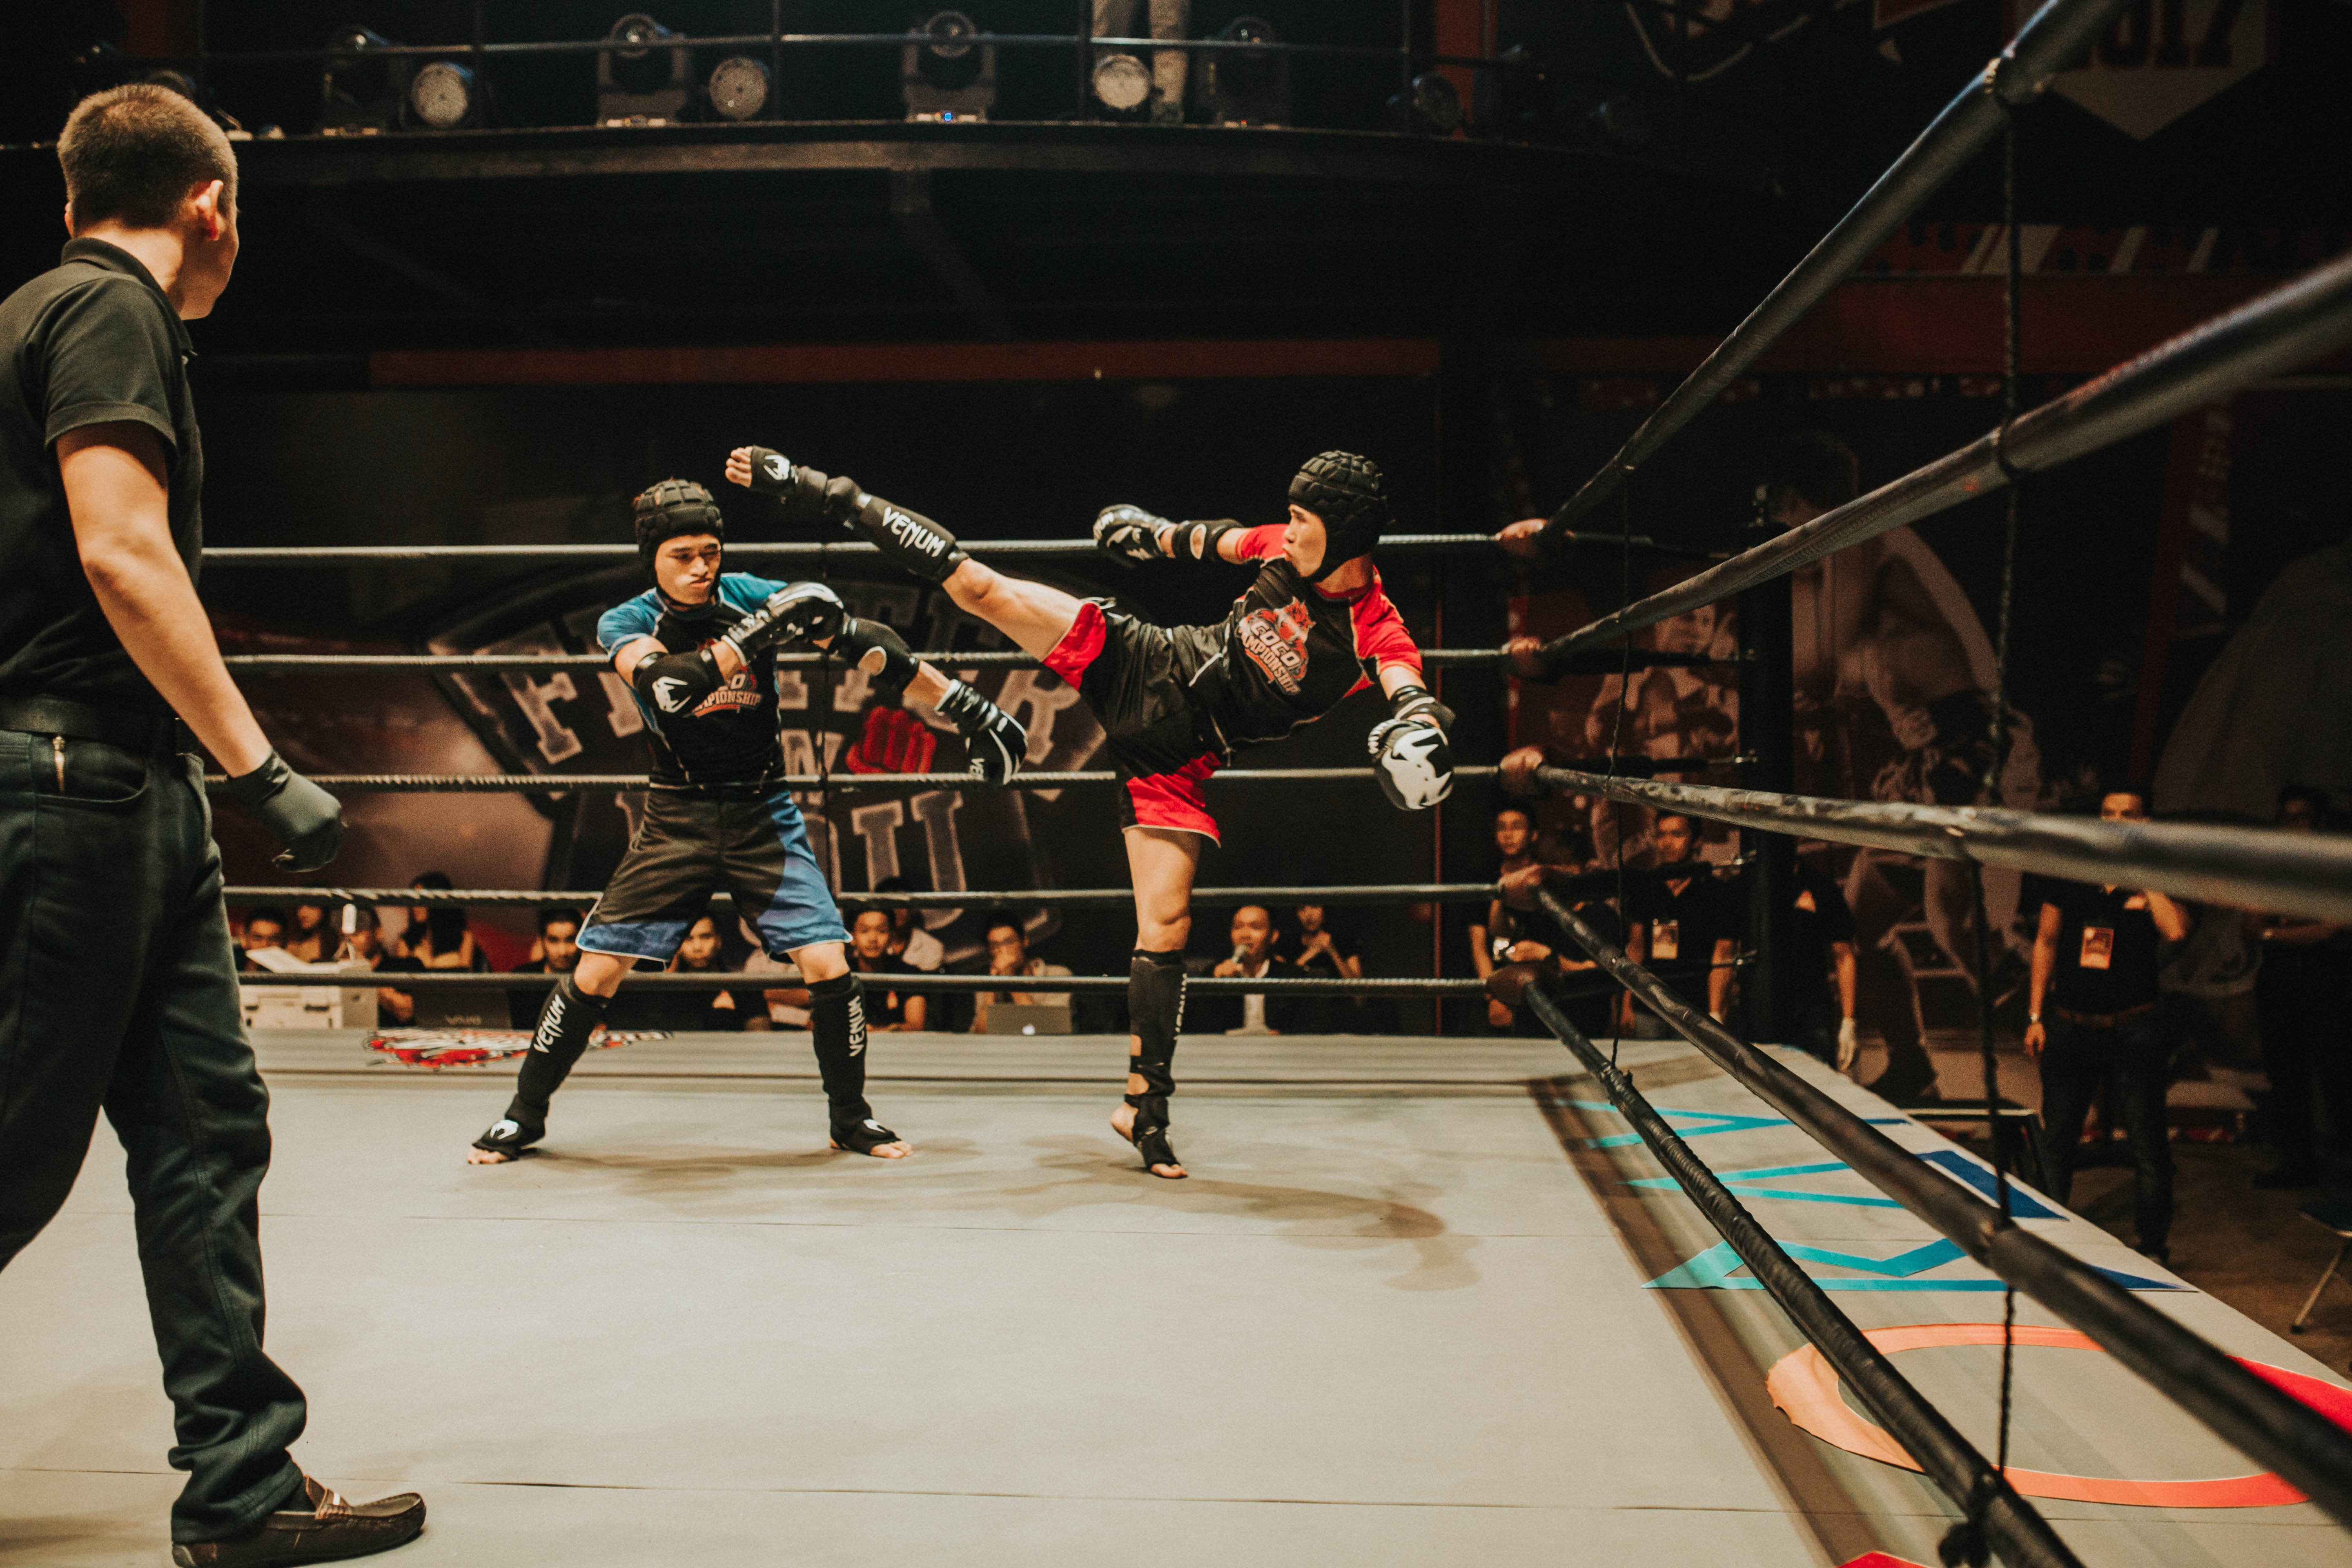 Two Contestant Doing Kick Boxing Match